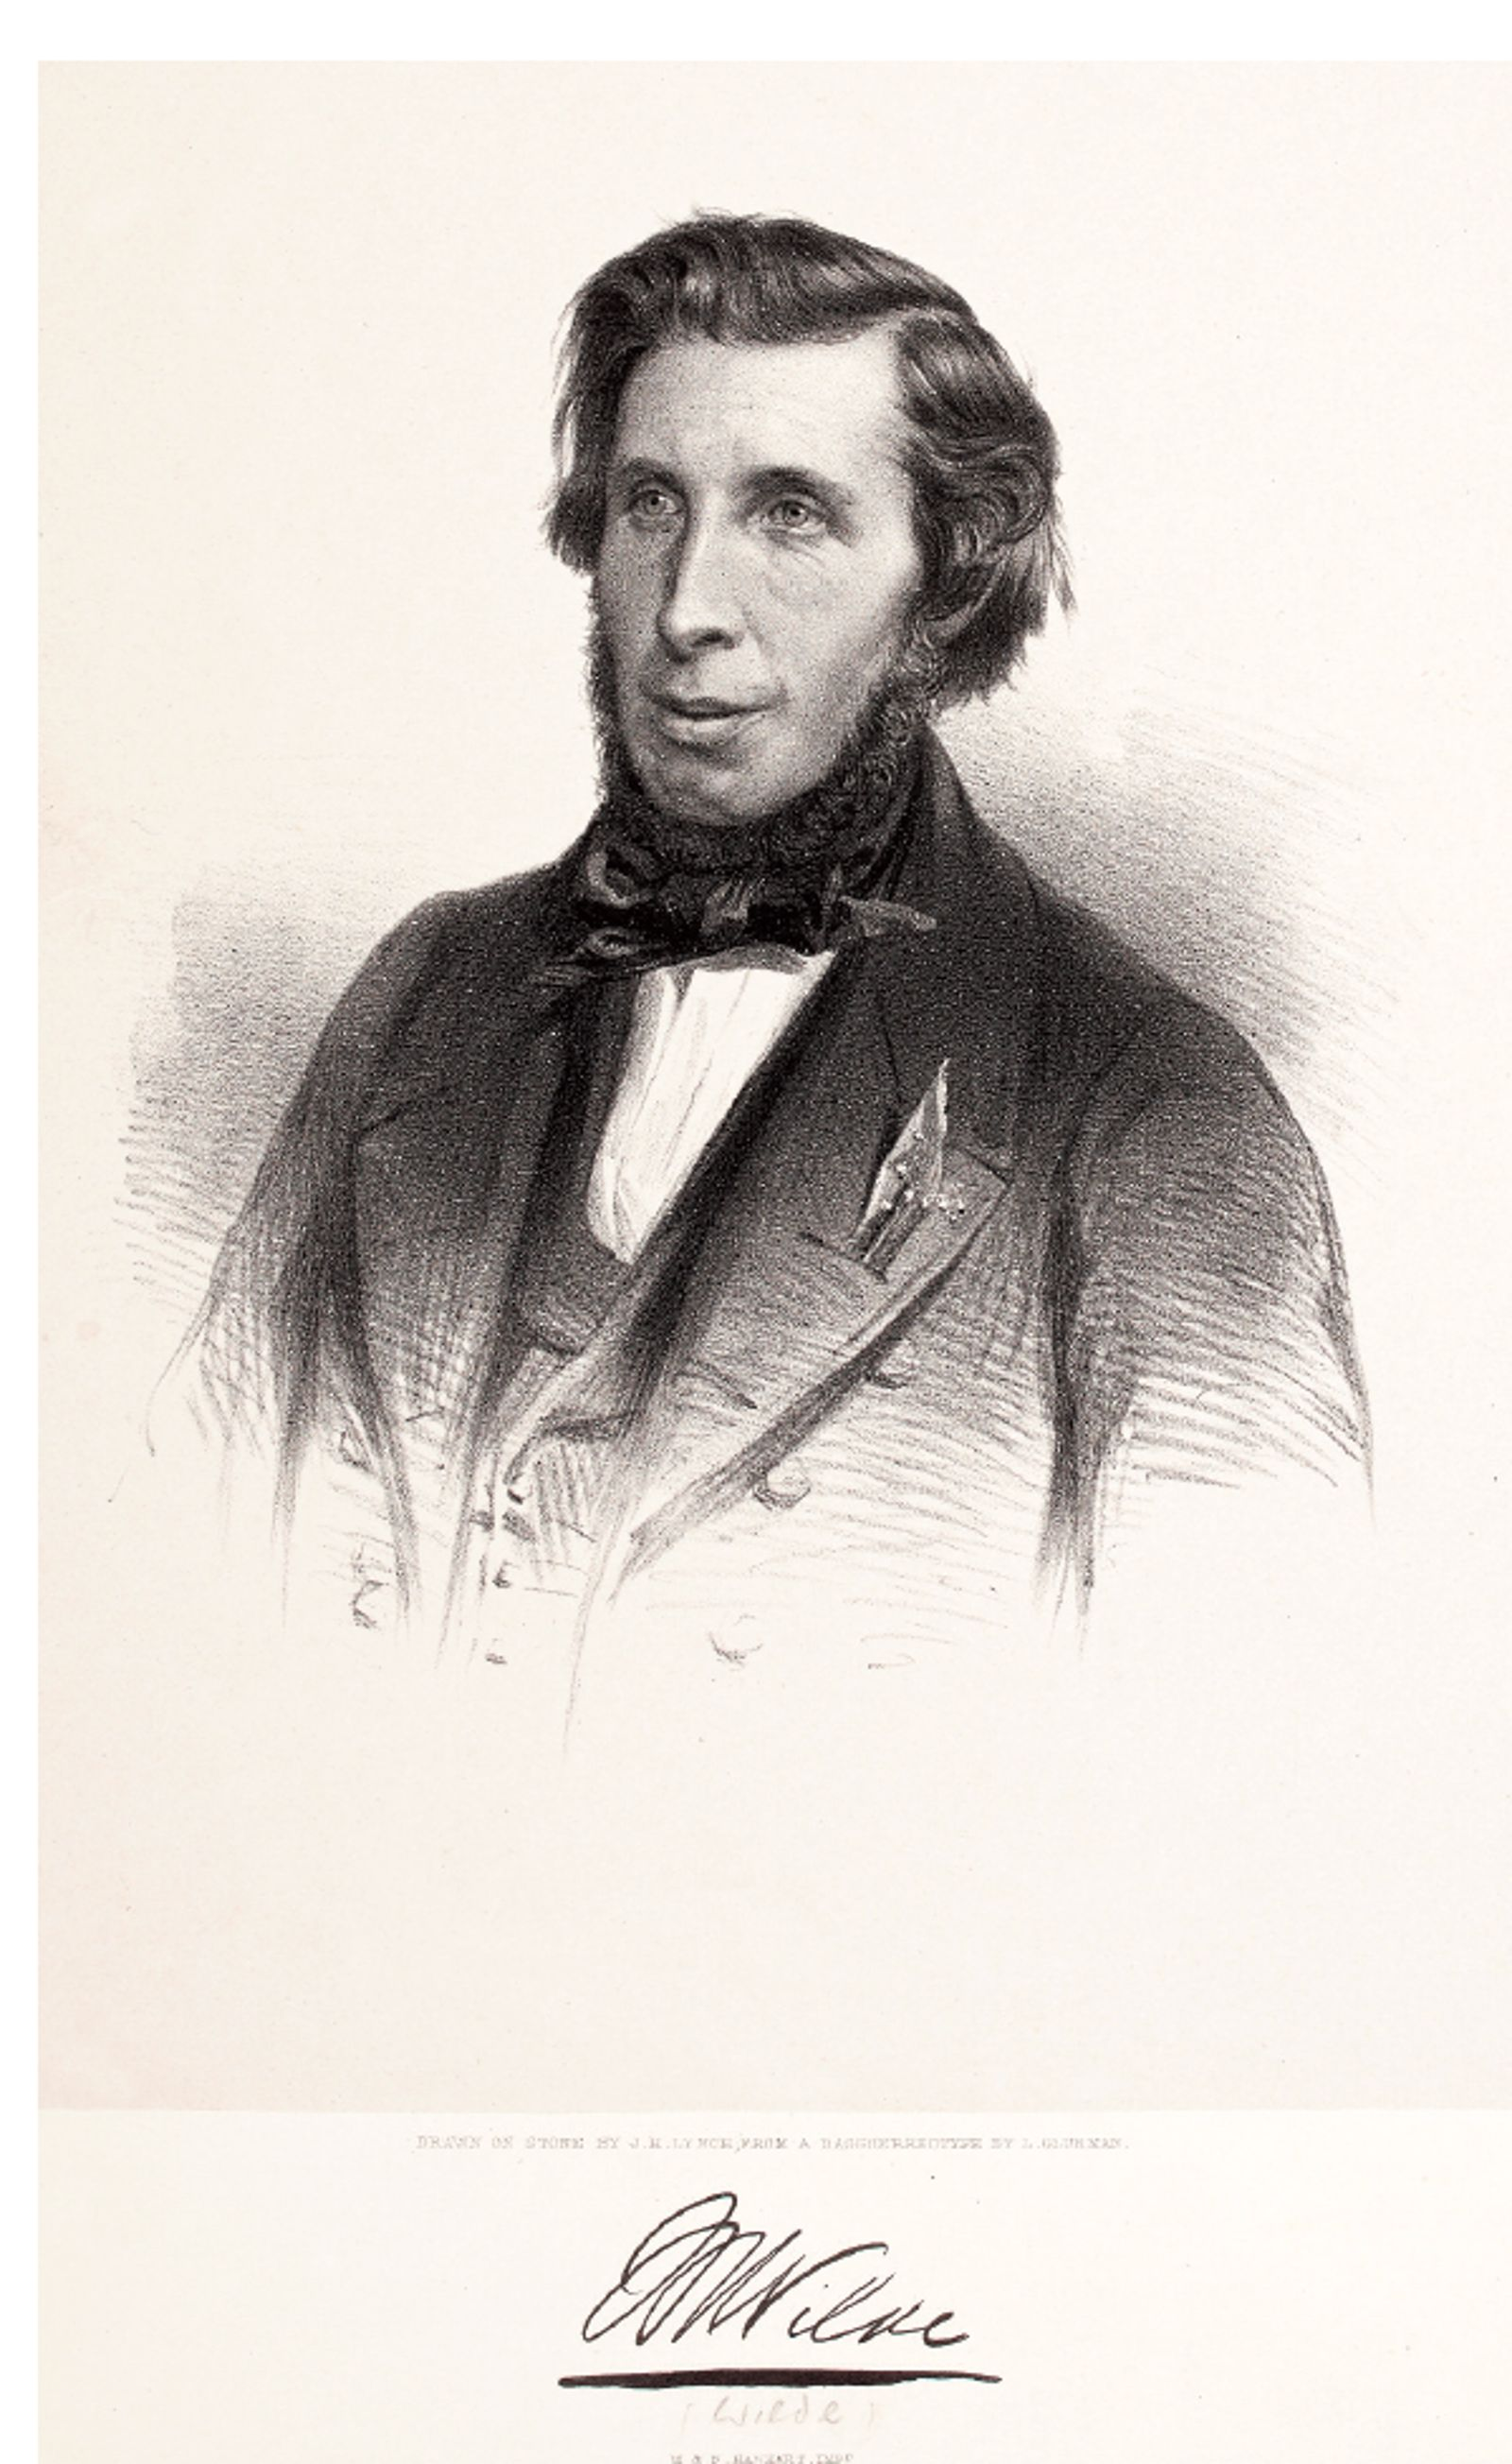 Image - Sir William Wilde. Image courtesy of the National Library of Ireland